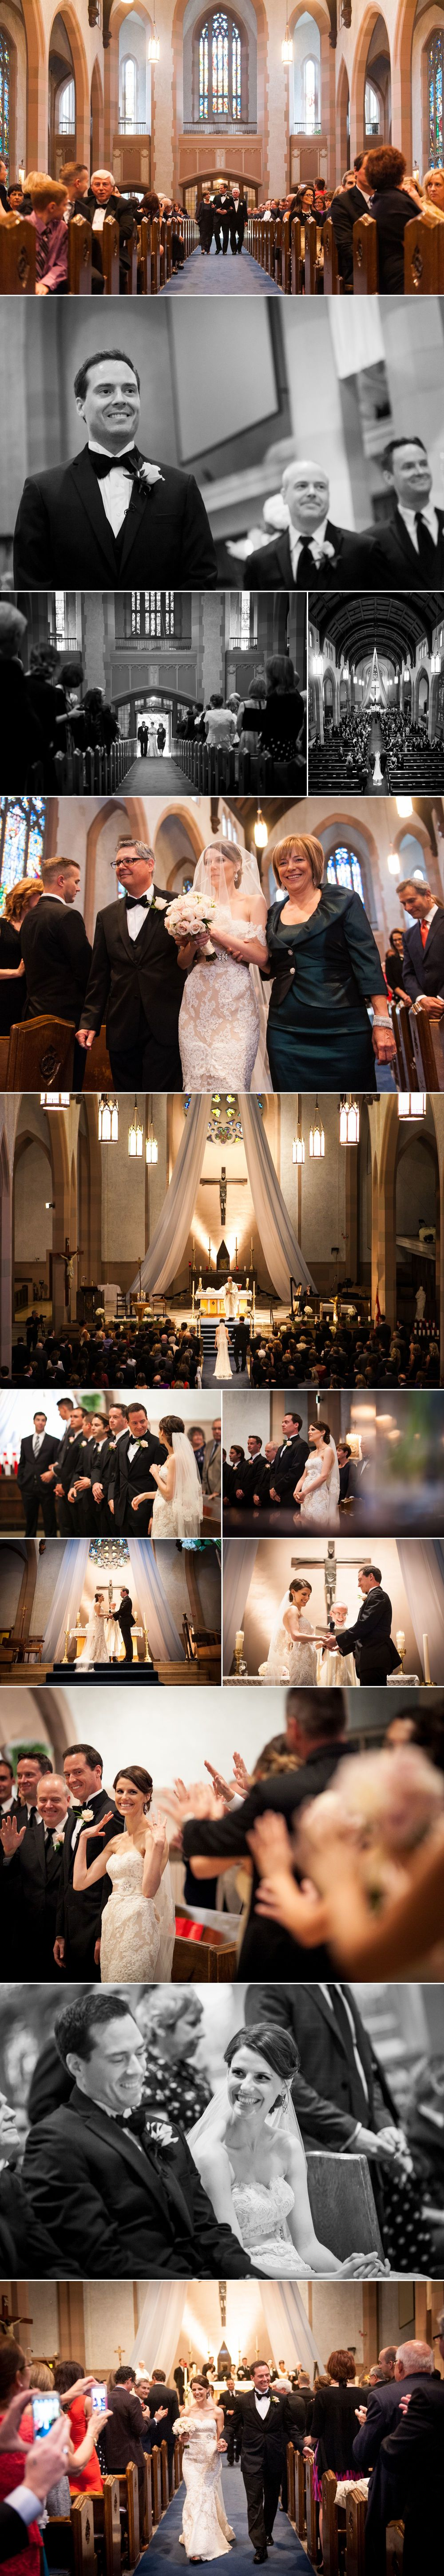 Wedding ceremony at Blessed Sacrament Church